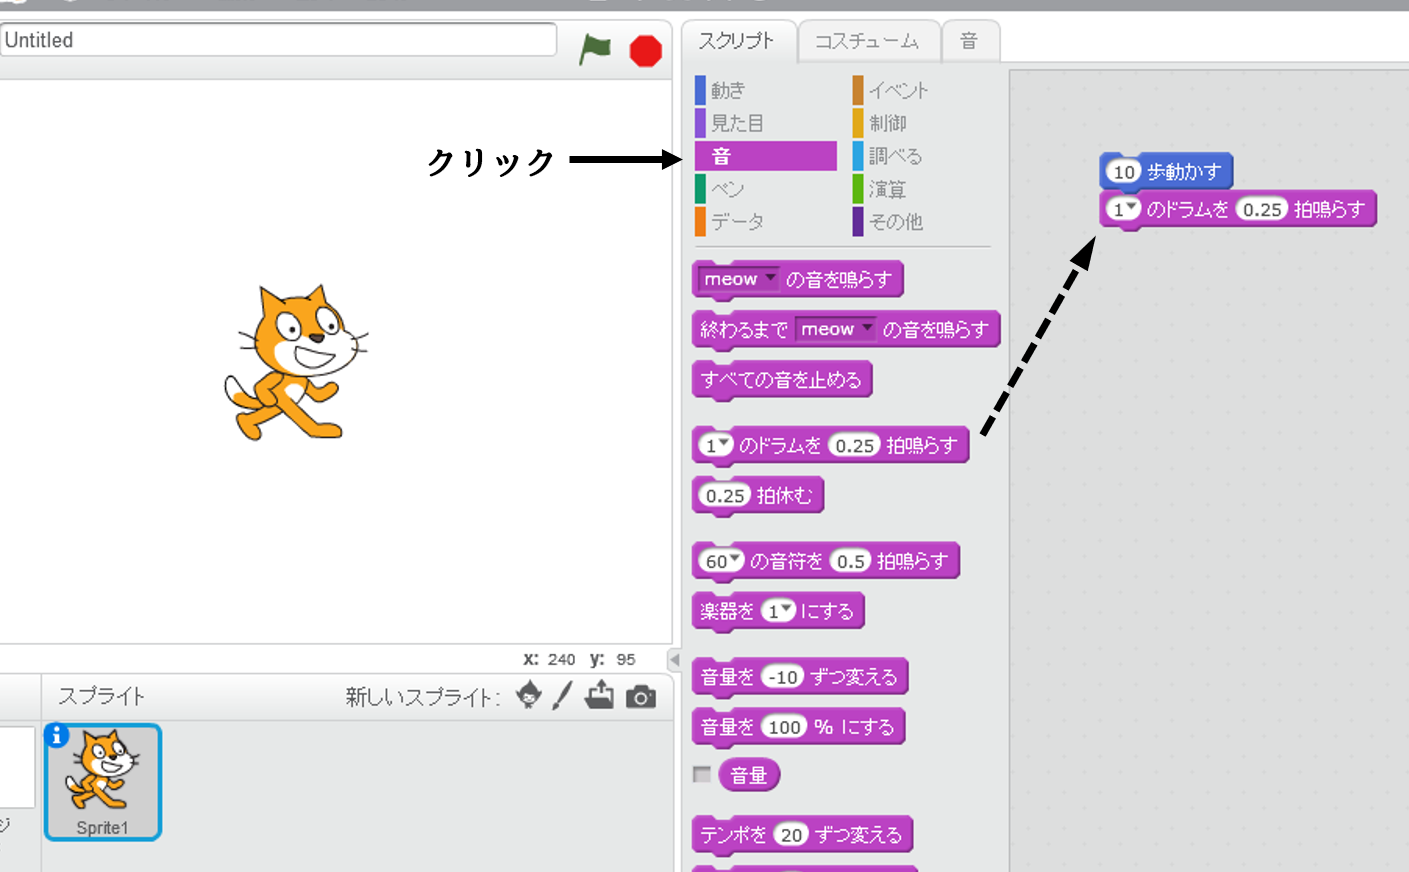 Getting-Started-Guide-Scratch2 図6